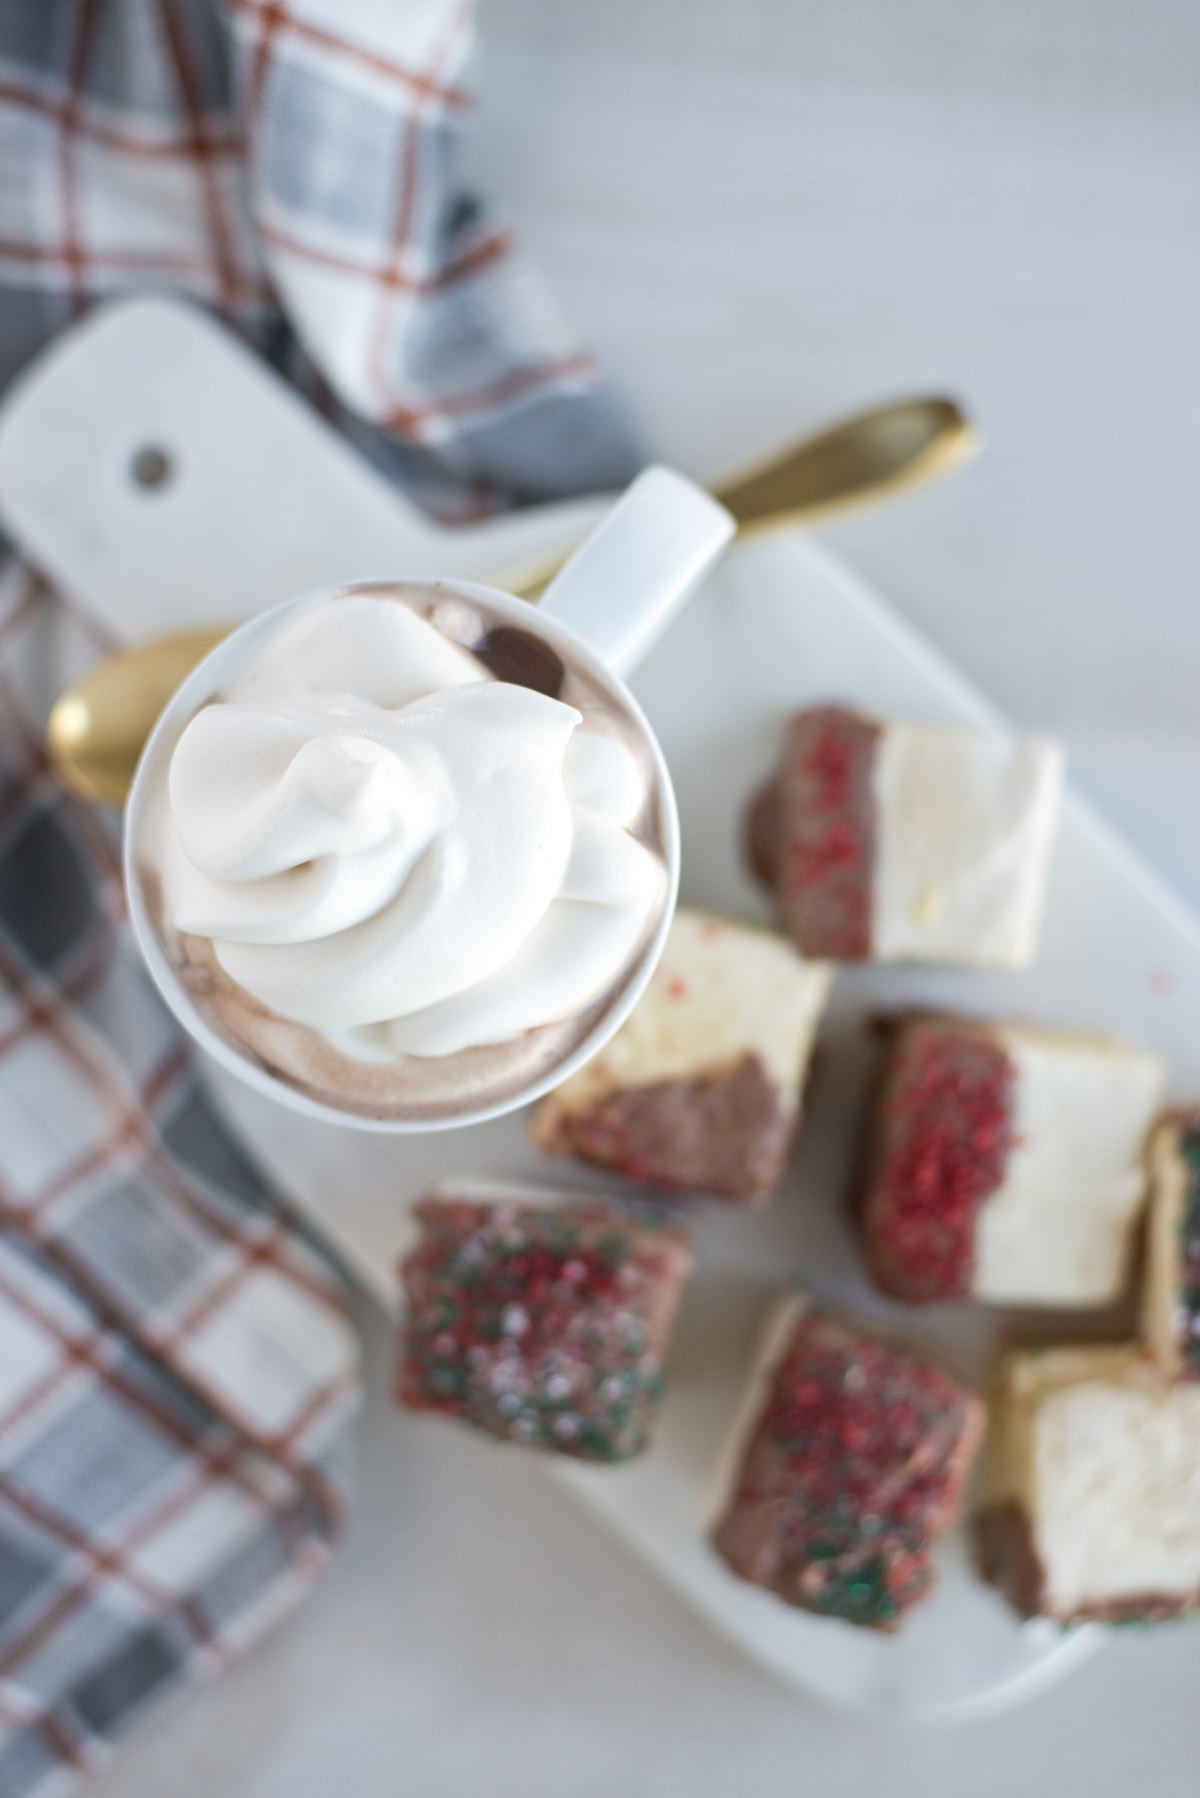 Quick 5-ingredient healthy homemade Marshmallow Recipes